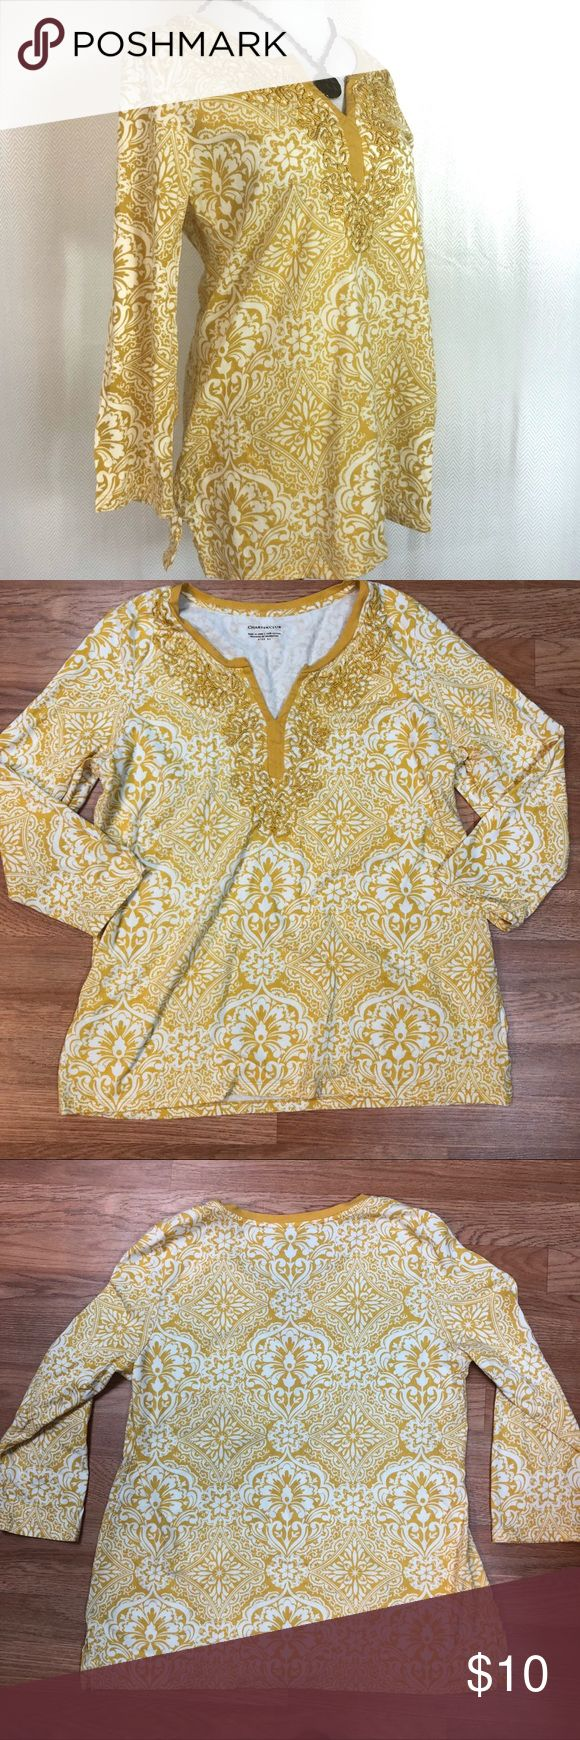 Embroidered 3/4 Sleeve Cotton Top 100% cotton with a beautiful mustard and white medallion print!  V-neck with solid mustard trim and intricate mustard embroidery!  3/4 length sleeves.  Easy care: machine wash and tumble dry!  Looks awesome with a denim skirt!  Perfect condition! Charter Club Tops